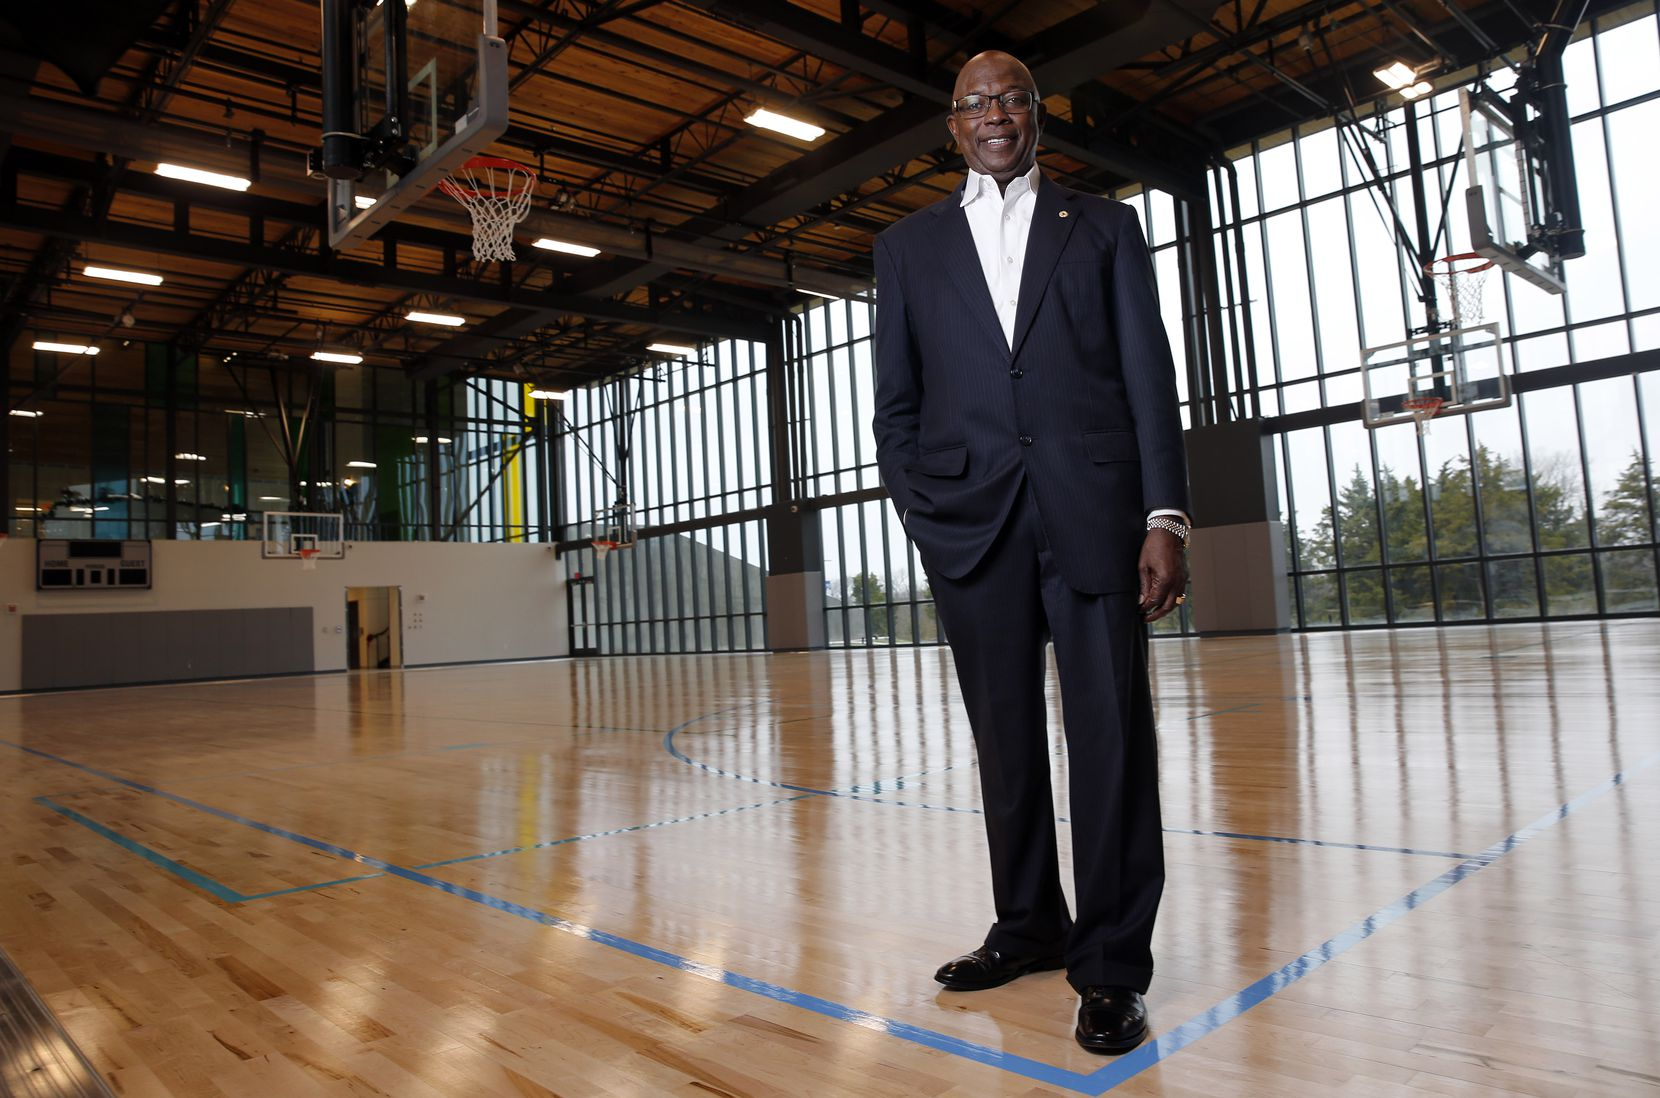 Dallas City Council member Tennell Atkins is shown in the Singing Hills gym.